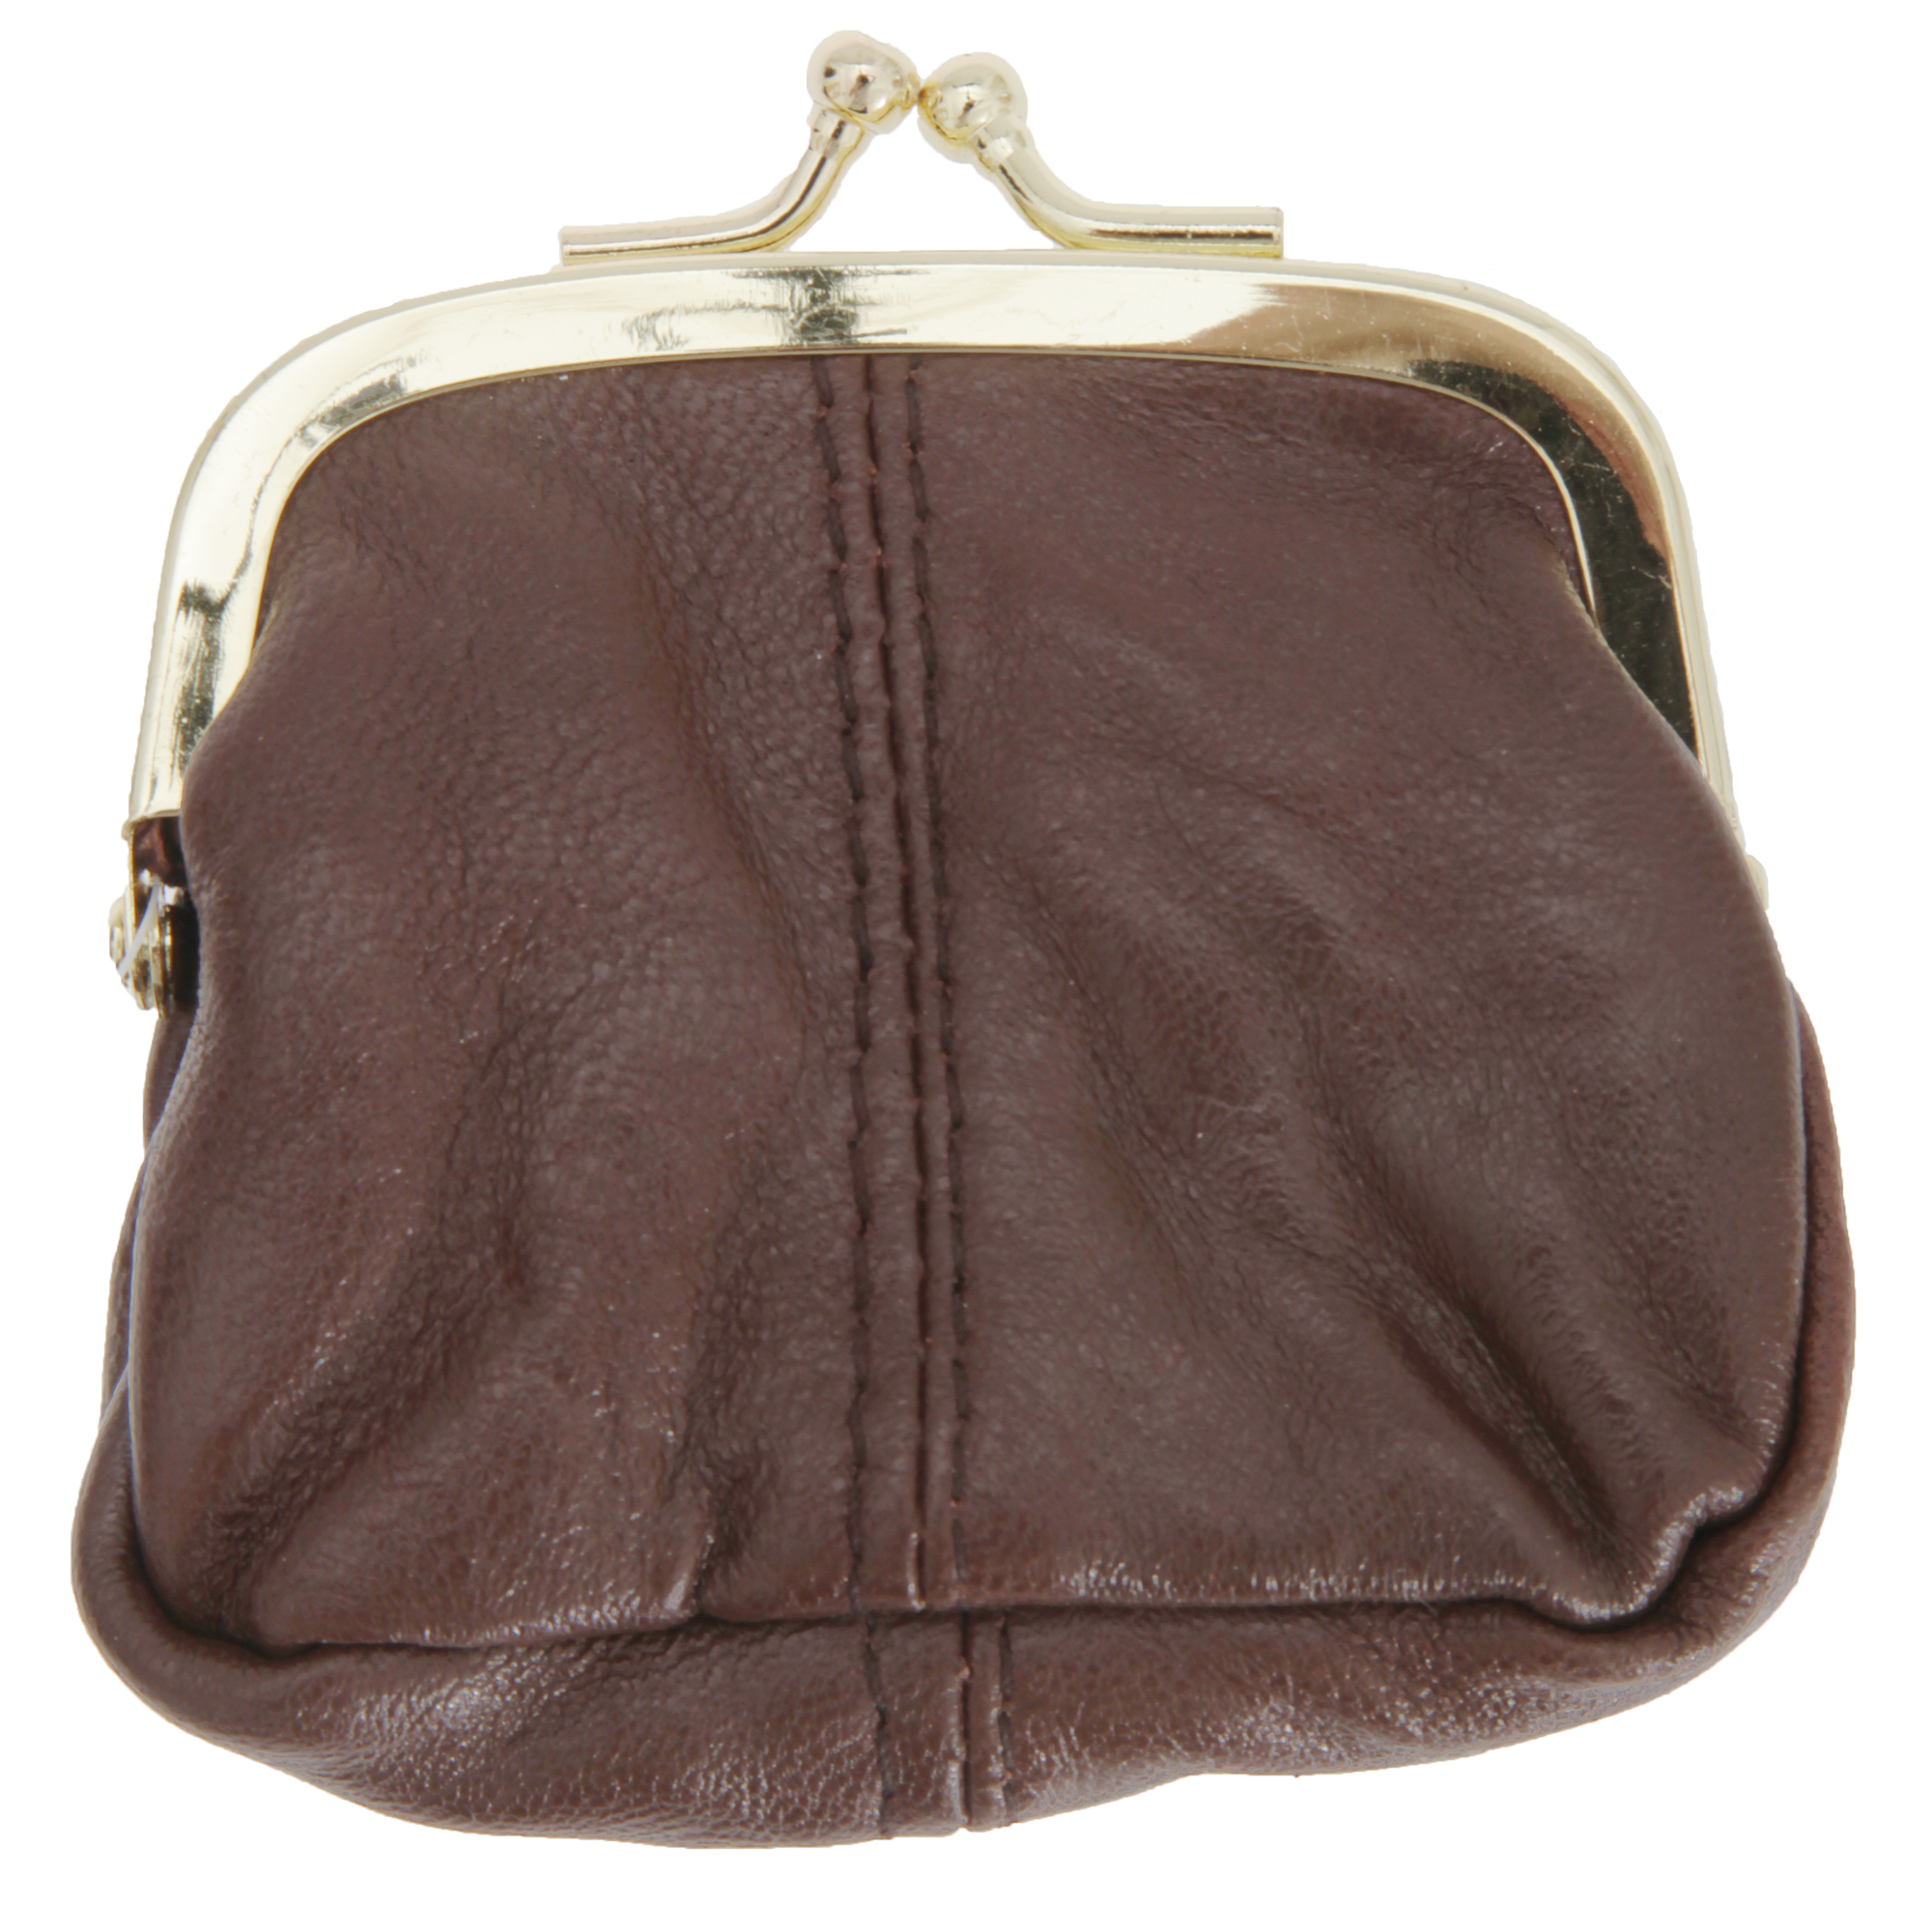 Womens/Ladies Soft Leather Coin Purse With Metal Clasp (One Size) (Tan)